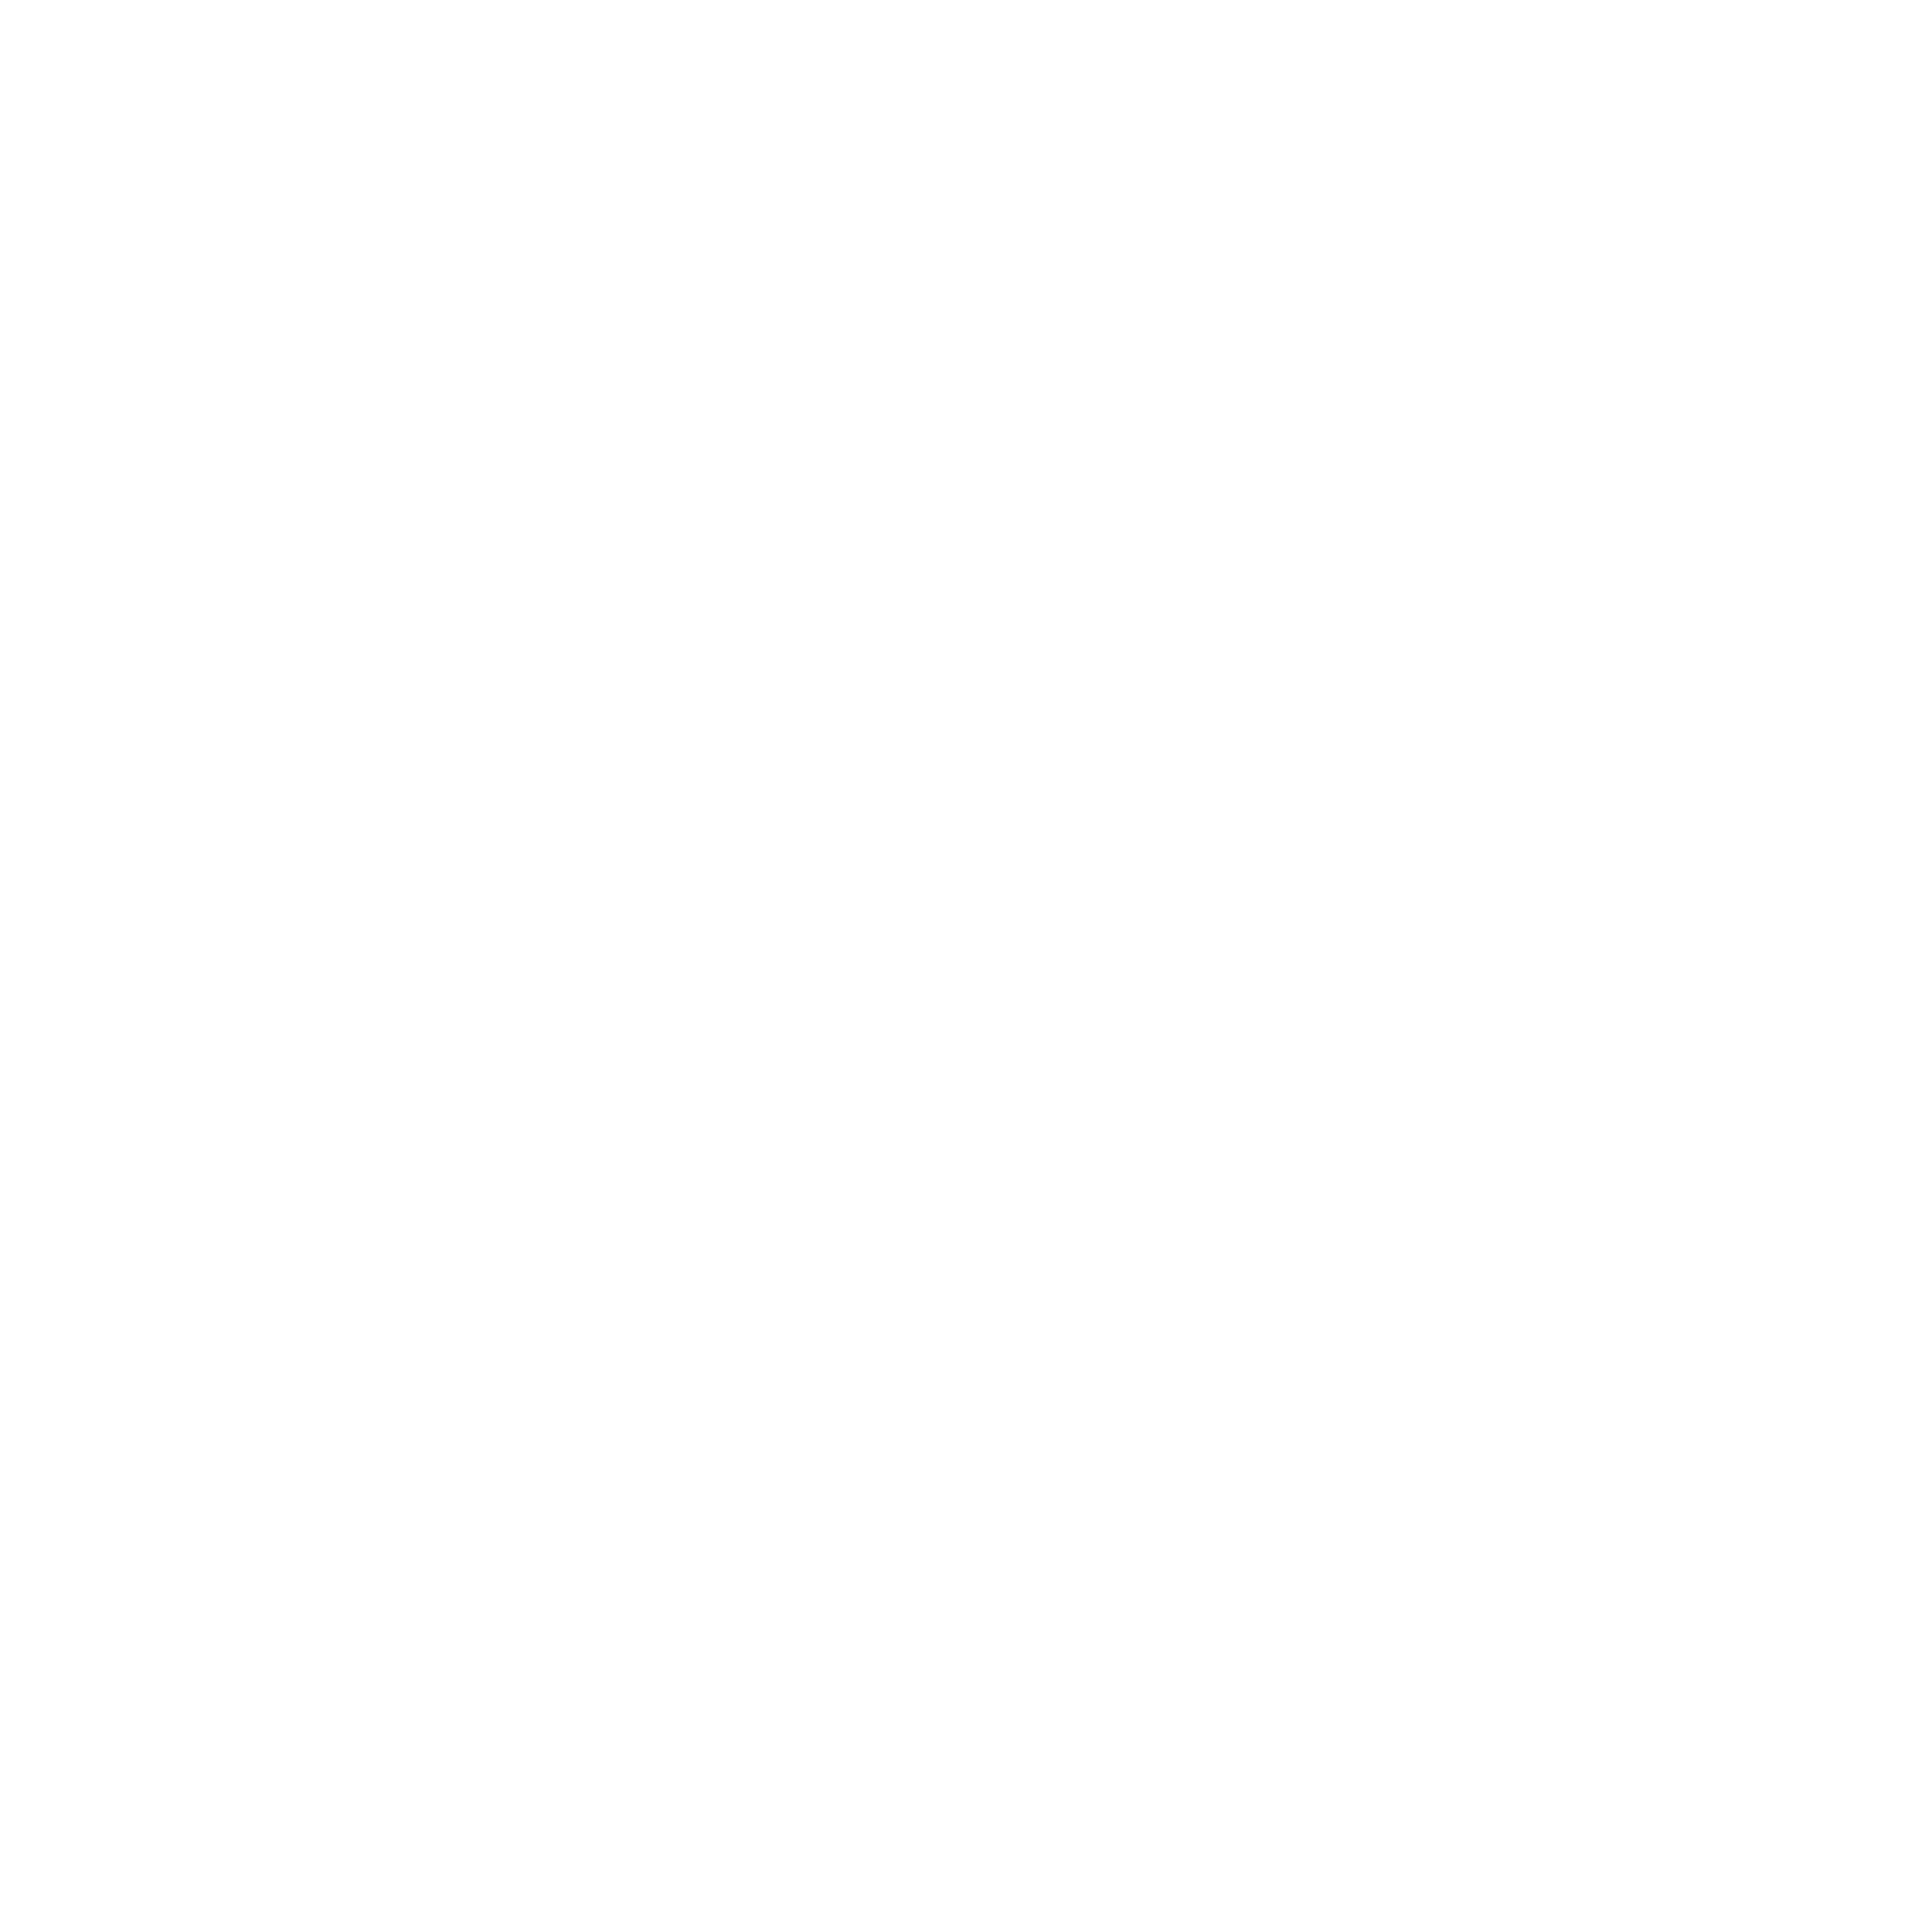 Spotify png icon. Page ico icns more